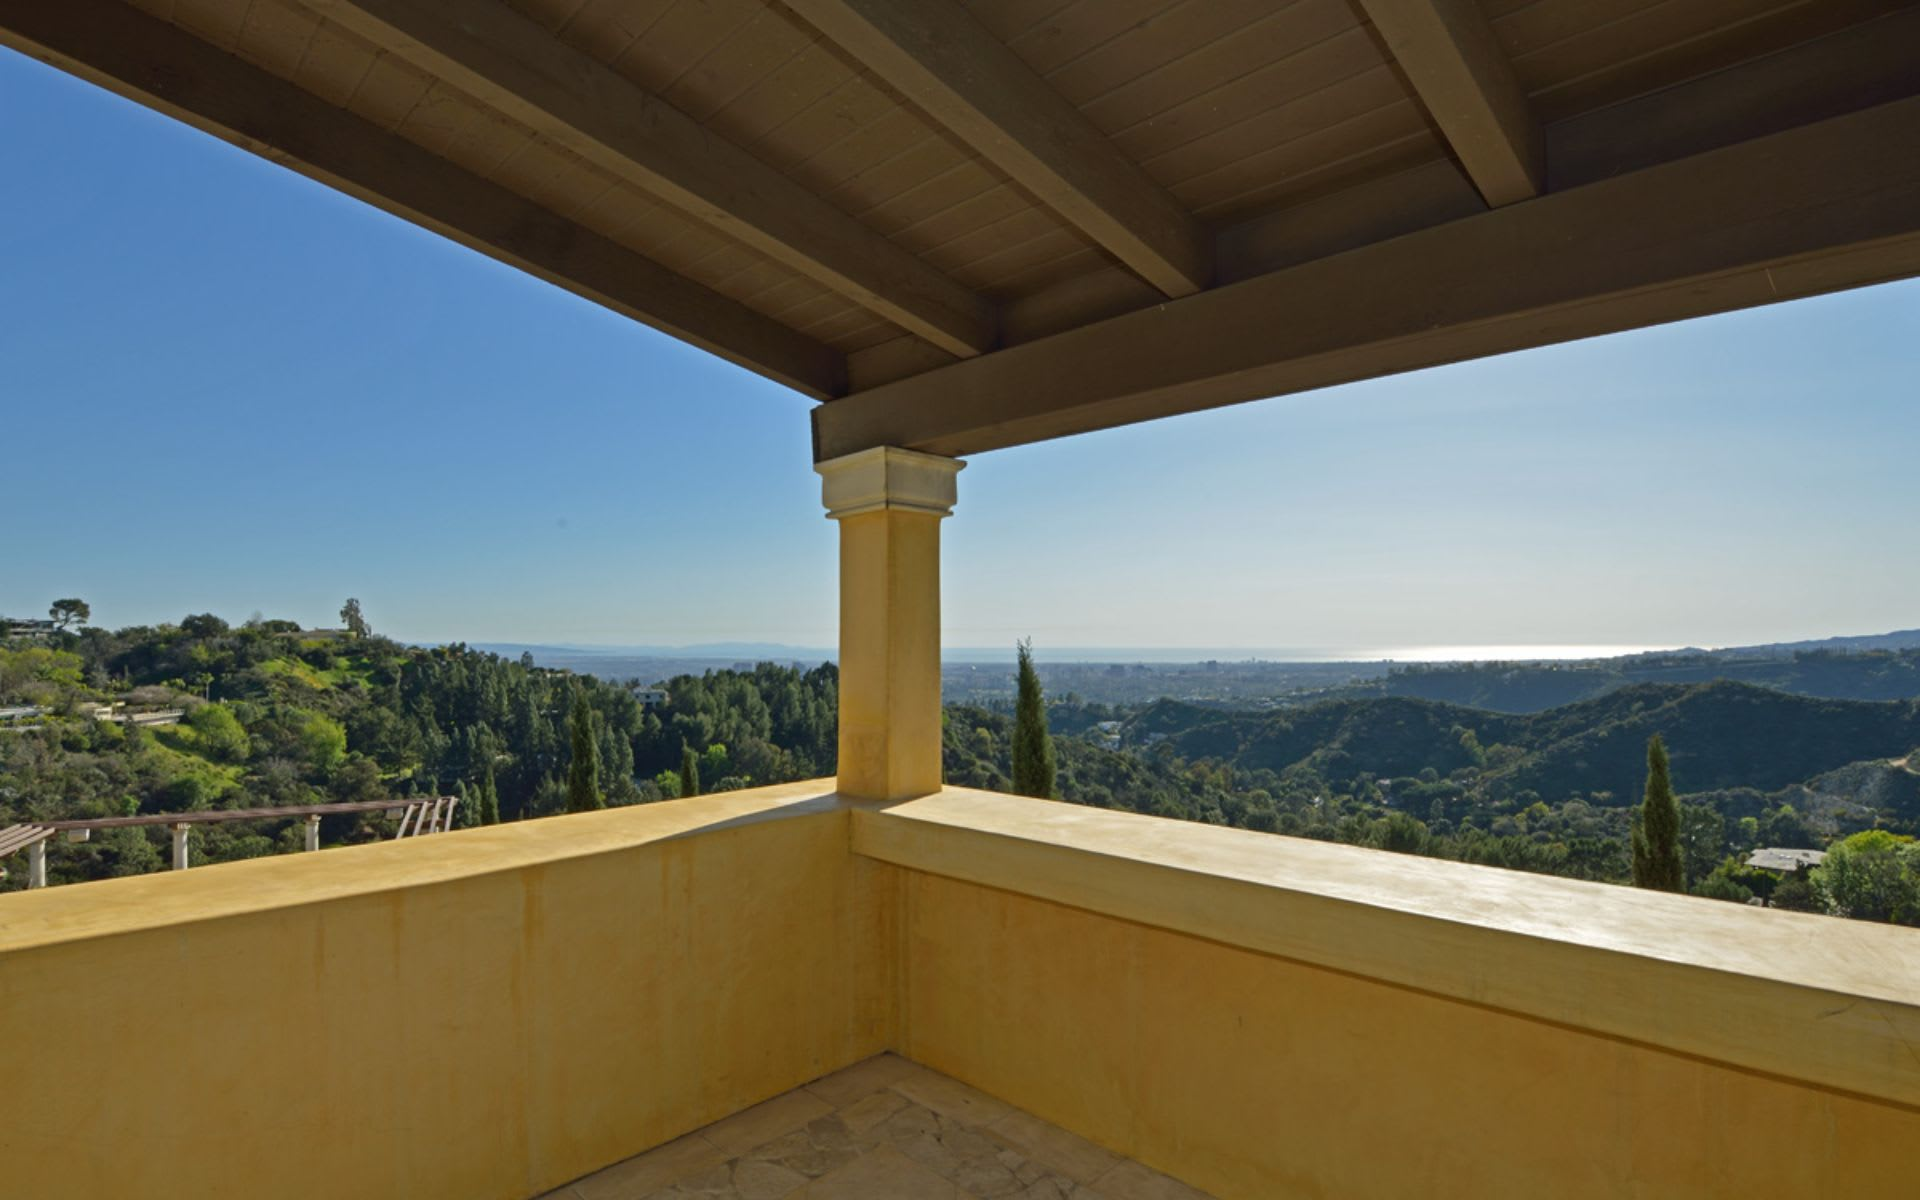 Malibu - Real Estate and Apartments for Sale | Christie's ...